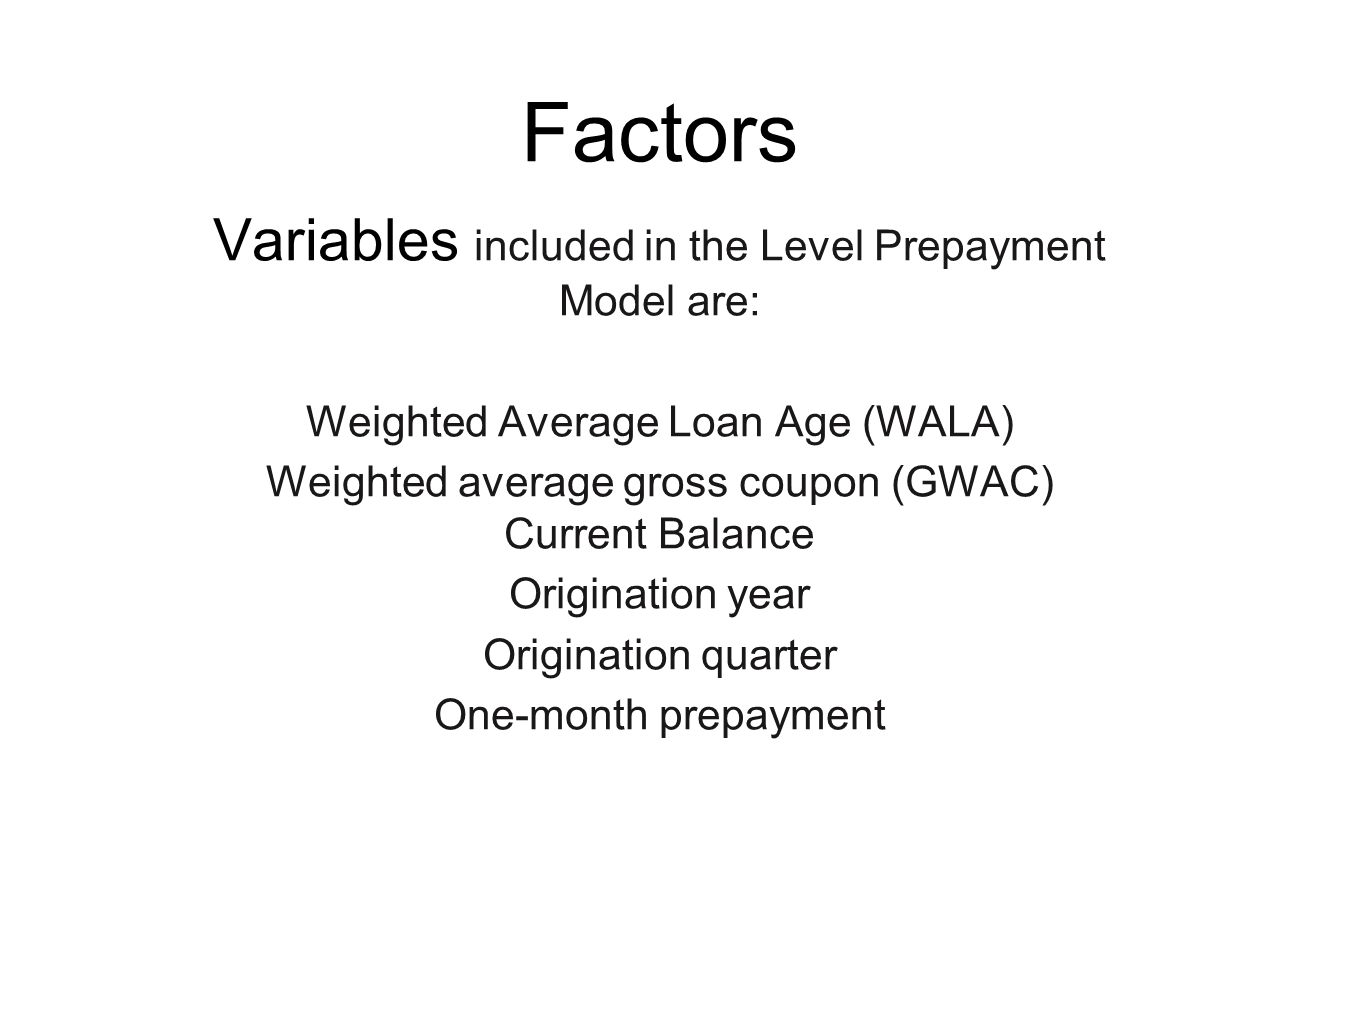 Factors Variables included in the Level Prepayment Model are: Weighted Average Loan Age (WALA) Weighted average gross coupon (GWAC) Current Balance Or